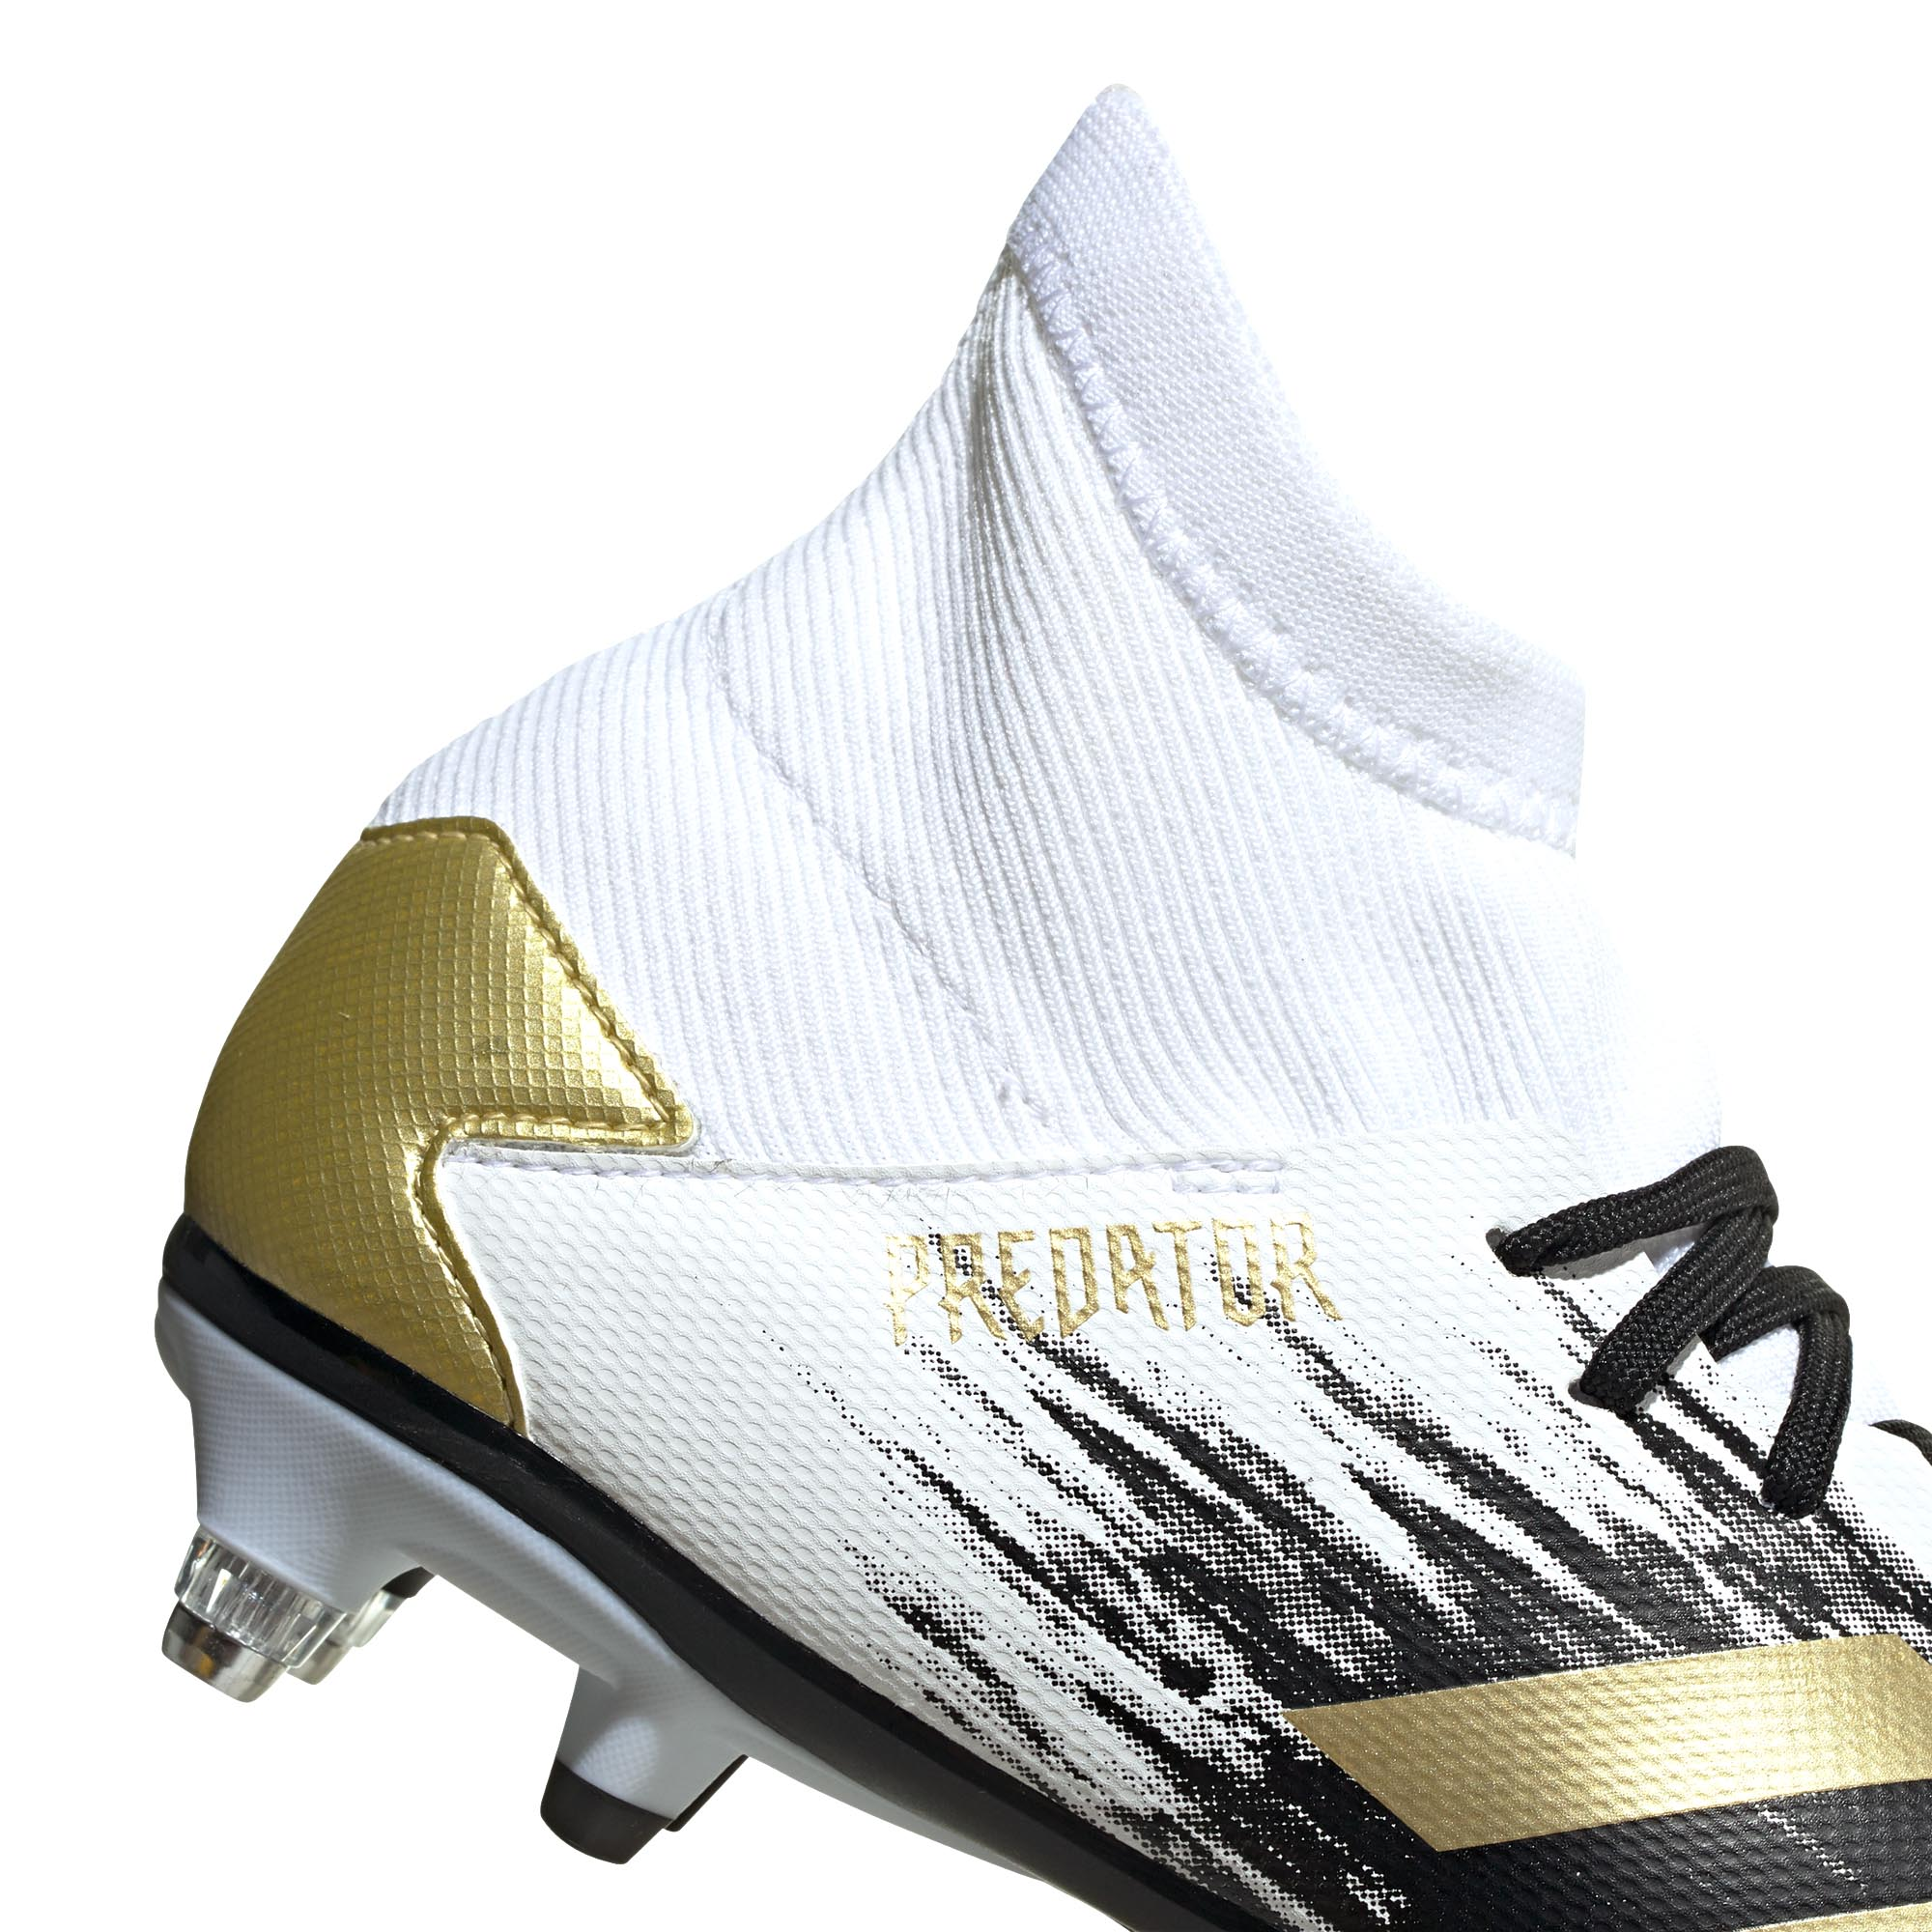 Adidas-Predator-20-3-SG-Soft-Ground-Junior-Enfants-Football-Boot-Inflight-Blanc miniature 10